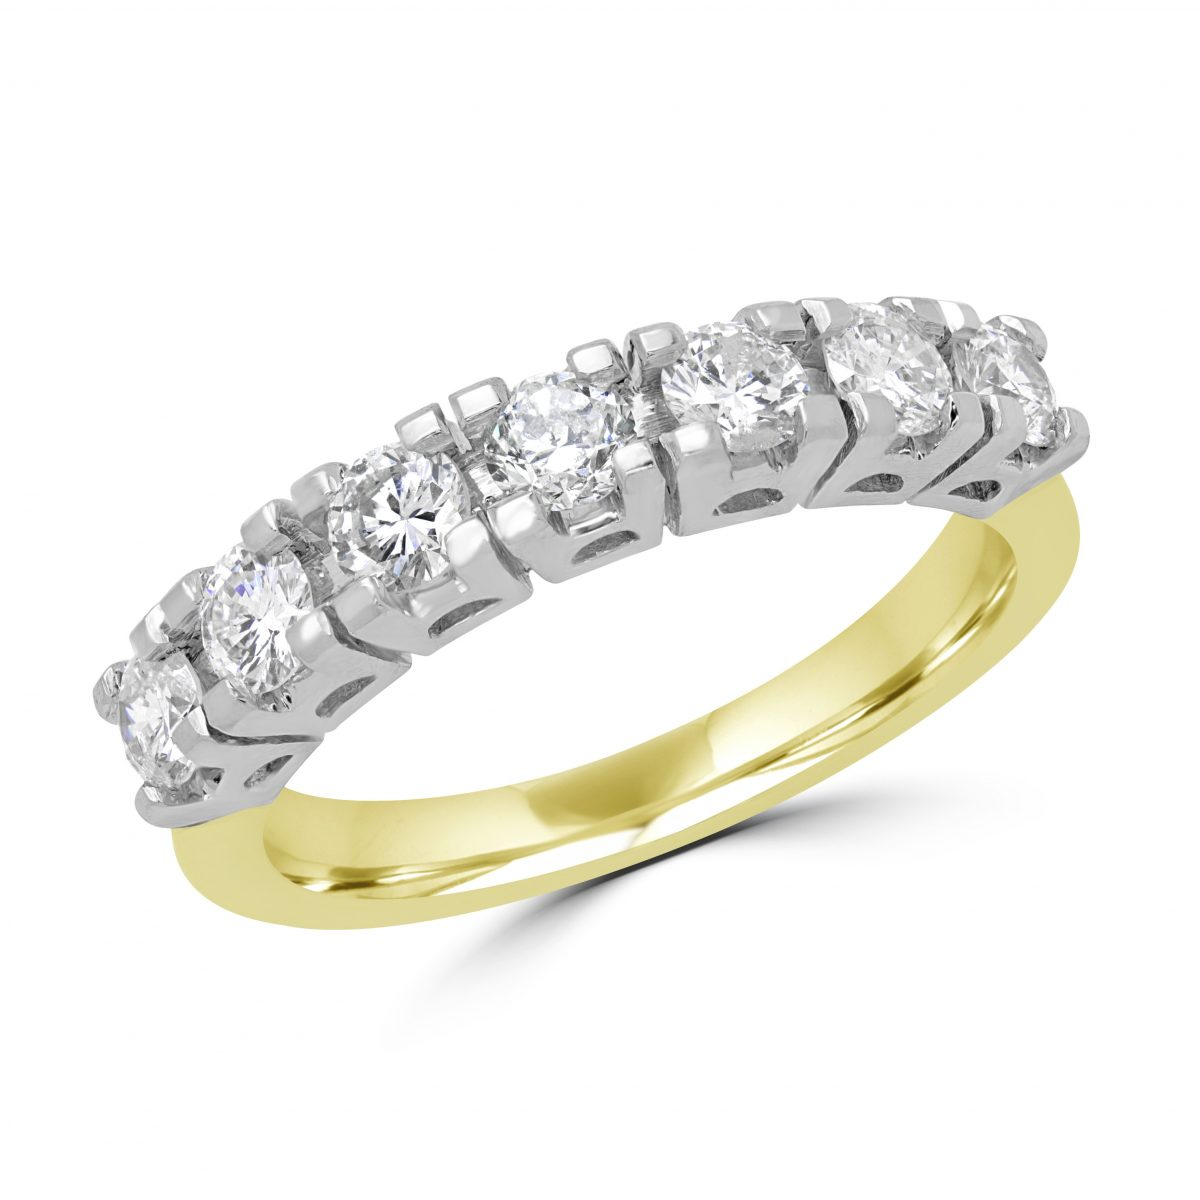 086 CARAT CTW SEMIETERNITY DIAMOND WEDDING BAND ANNIVERSARY RING